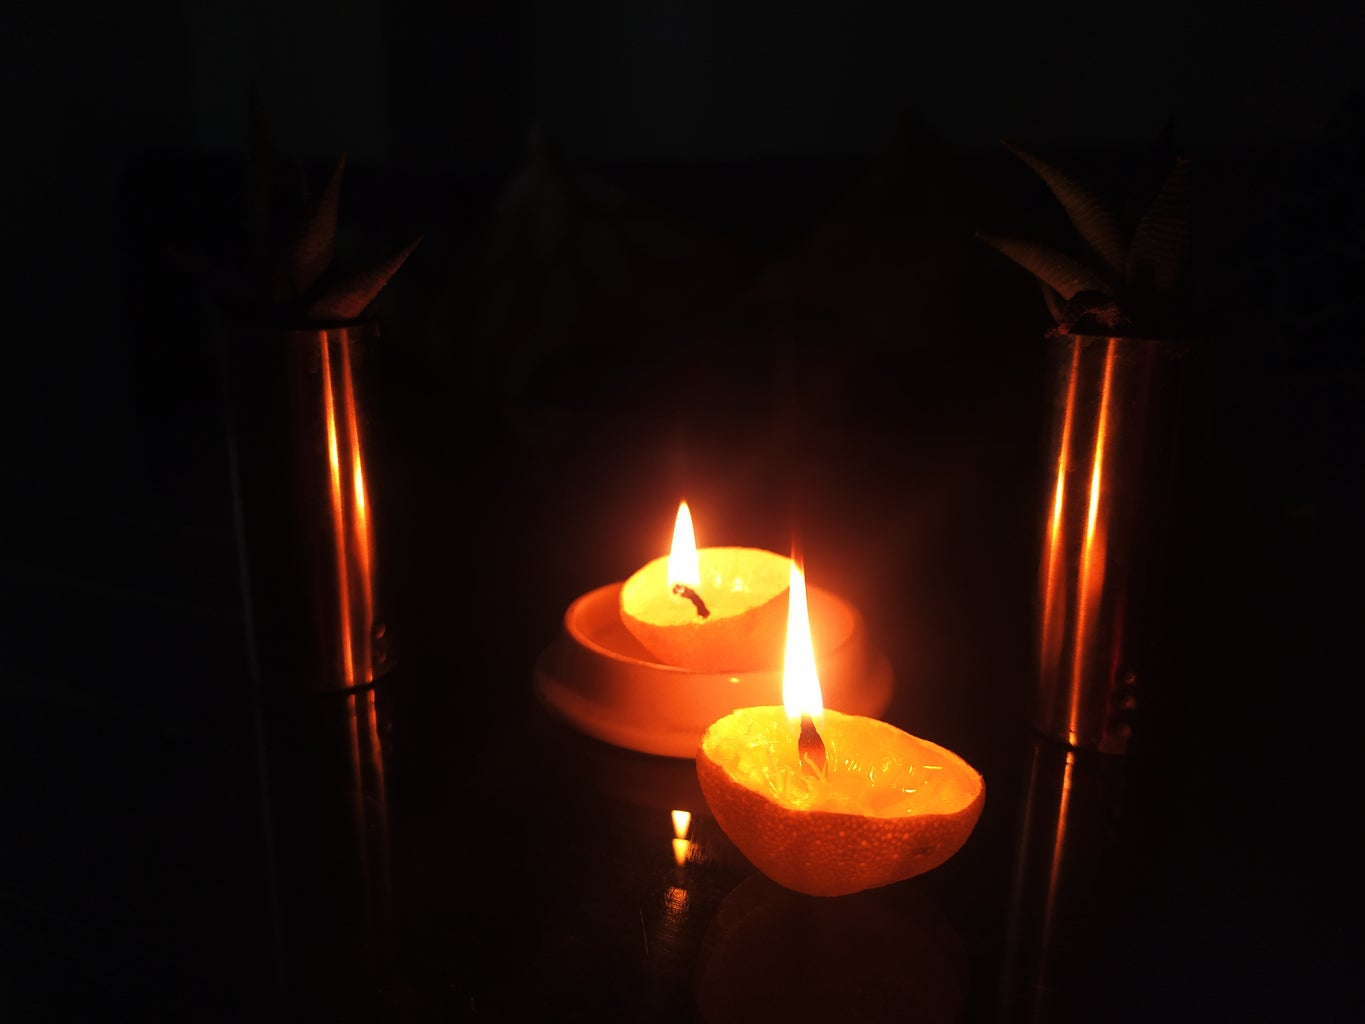 Ignite the Wick and Your Homemade 'organic Aroma Lamp' Is Ready to Spread a Magical Fragrance